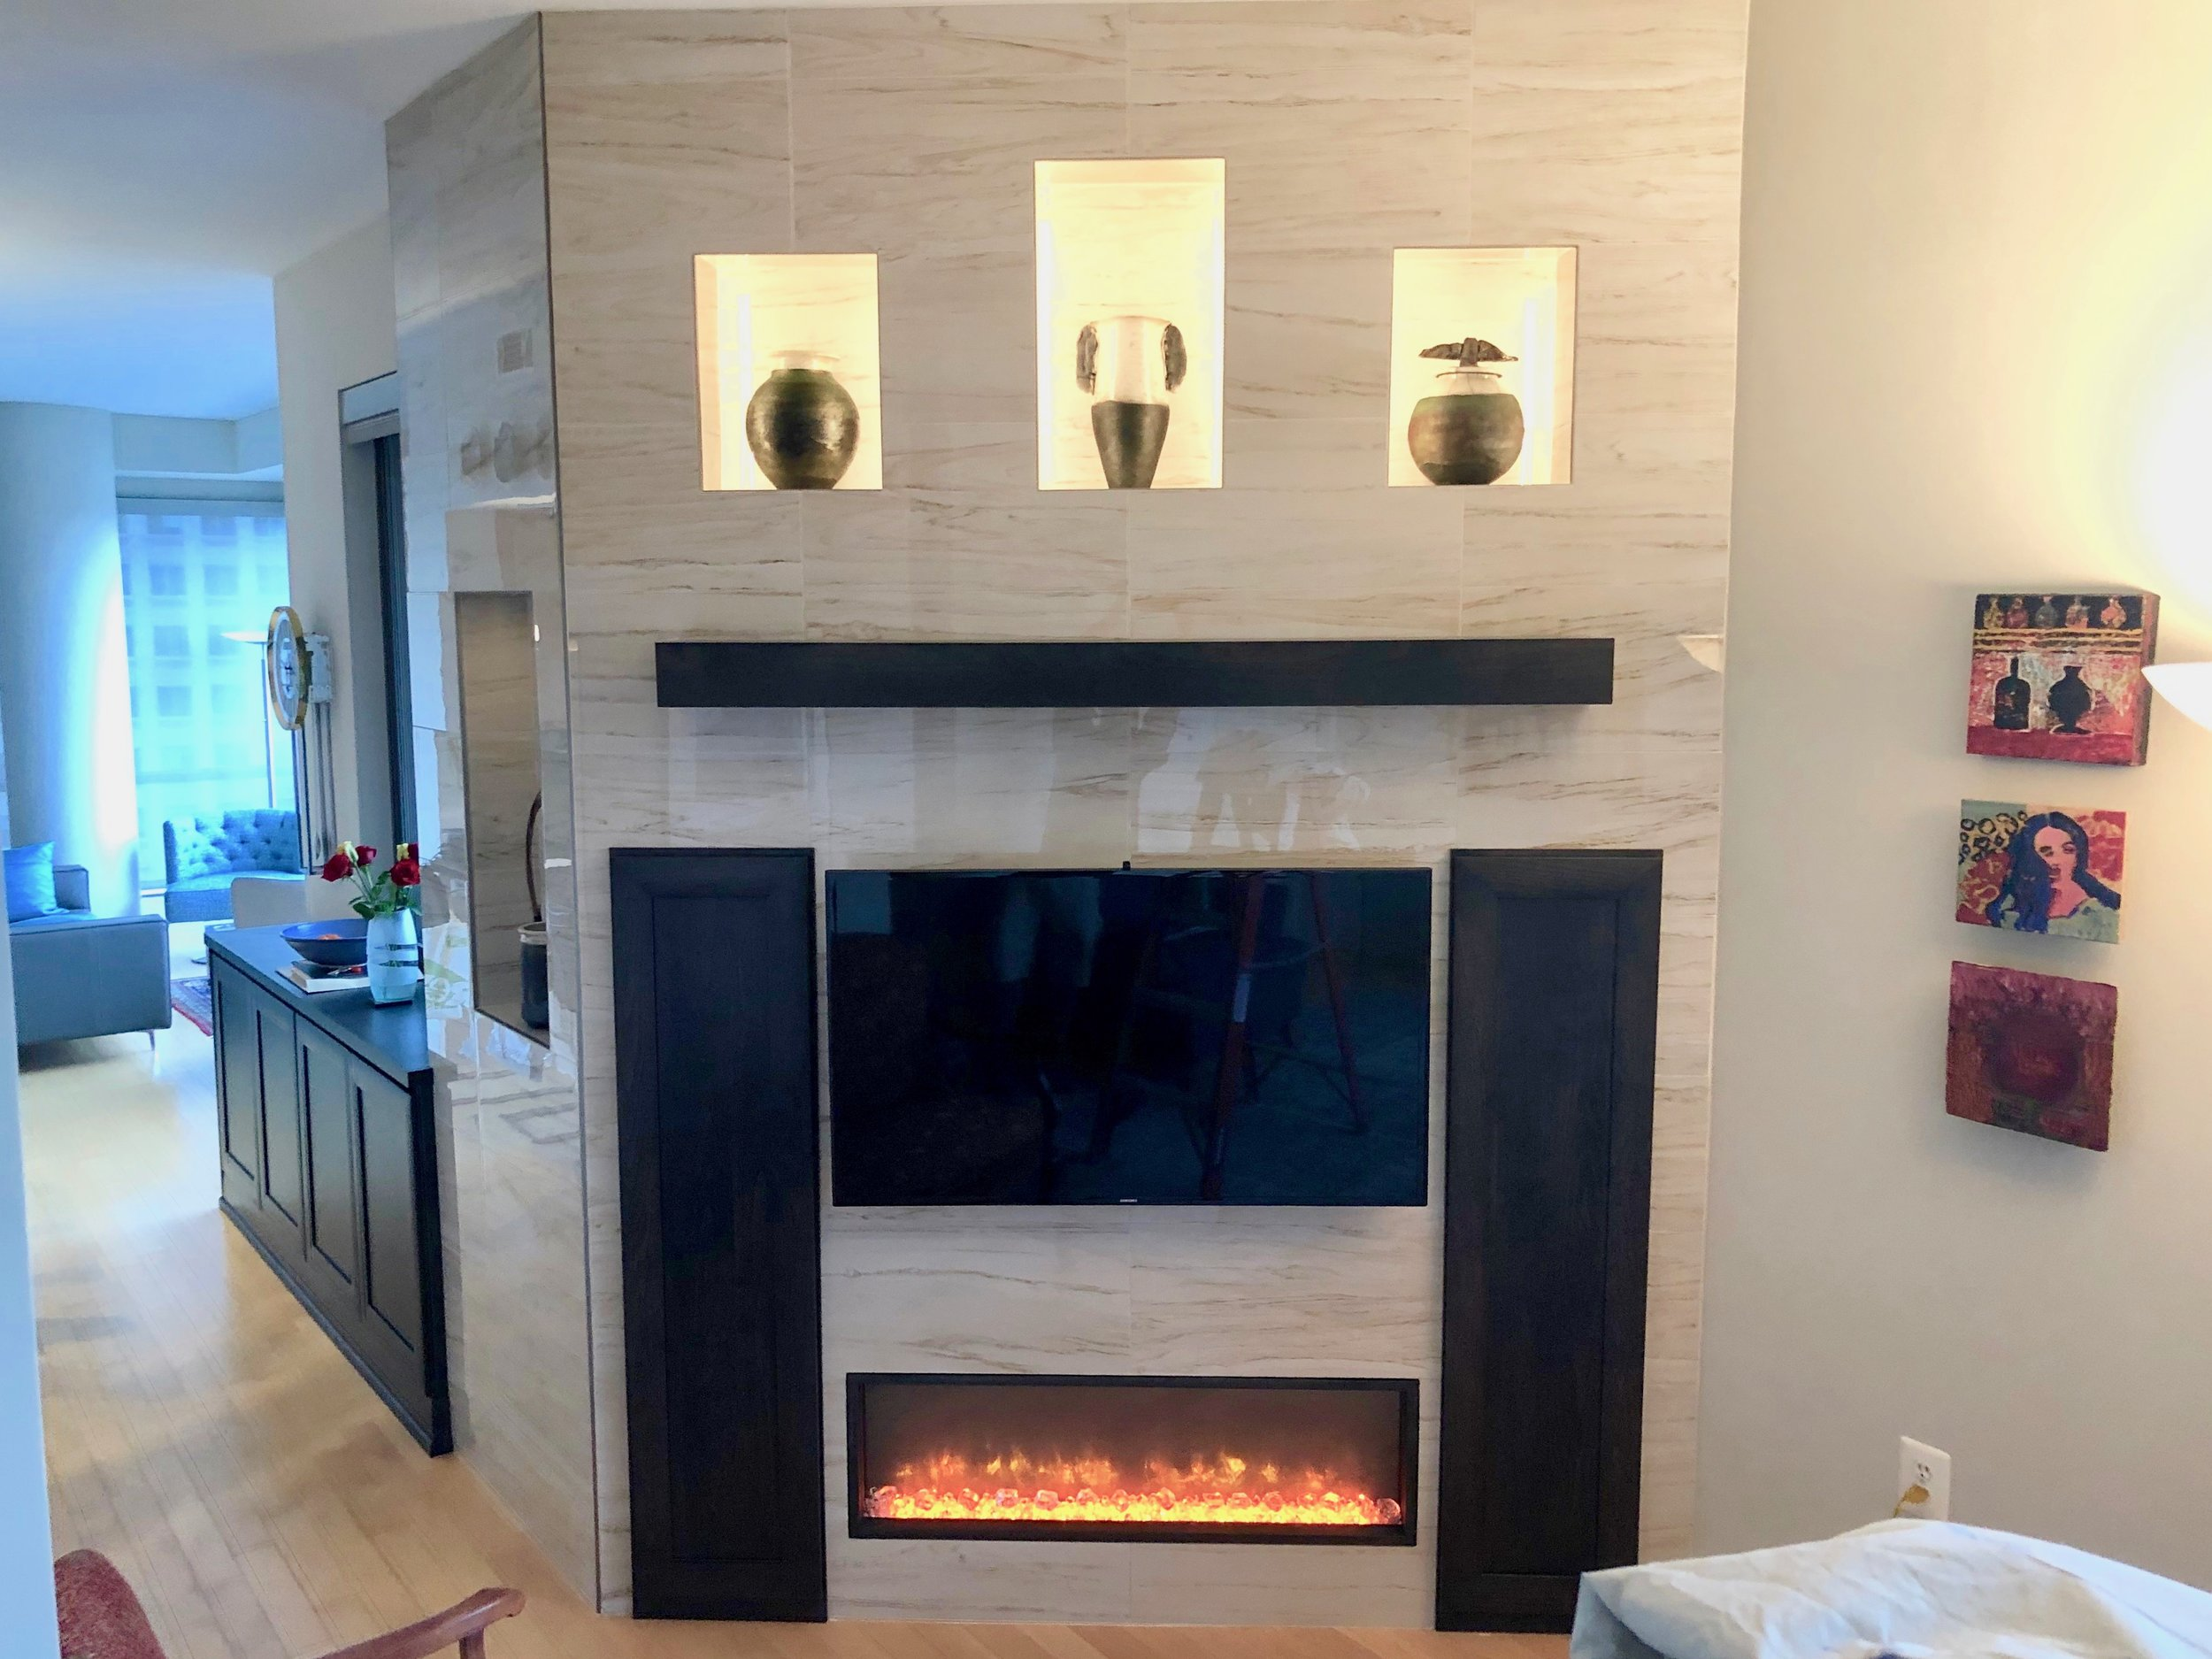 The new  tiled  fireplace wall with  linear fireplace , new  cabinetry  and LED lit display nooks.